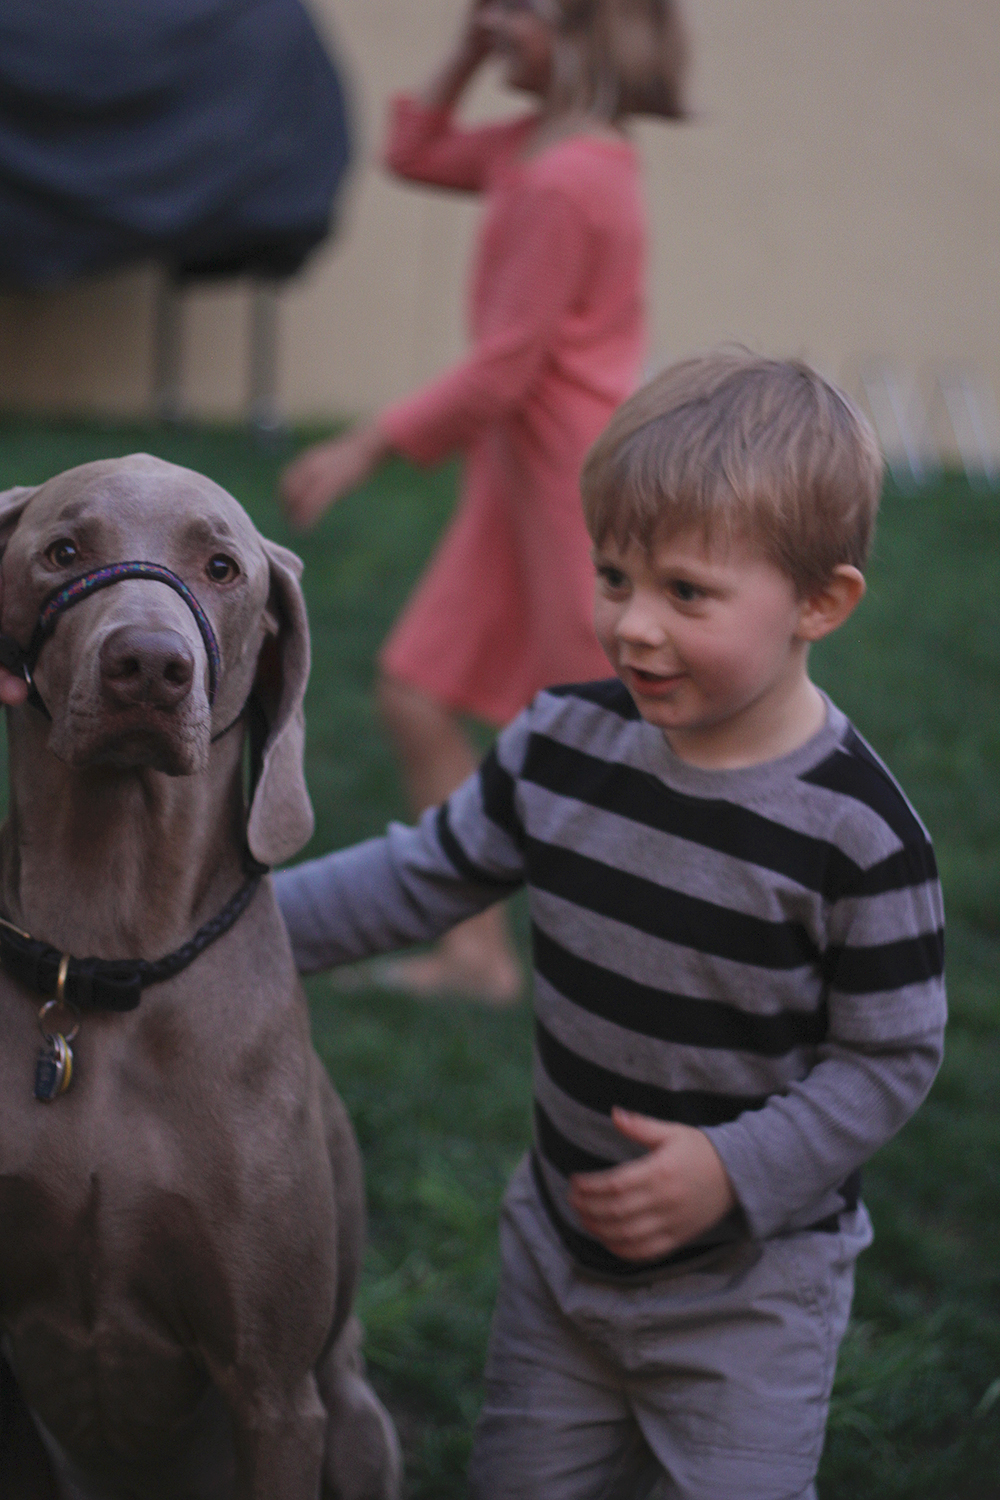 dog weimaraner dogs and kids gentle leader Stormcloud Brewery Stormcloud Brewing Company Frankfort Michigan